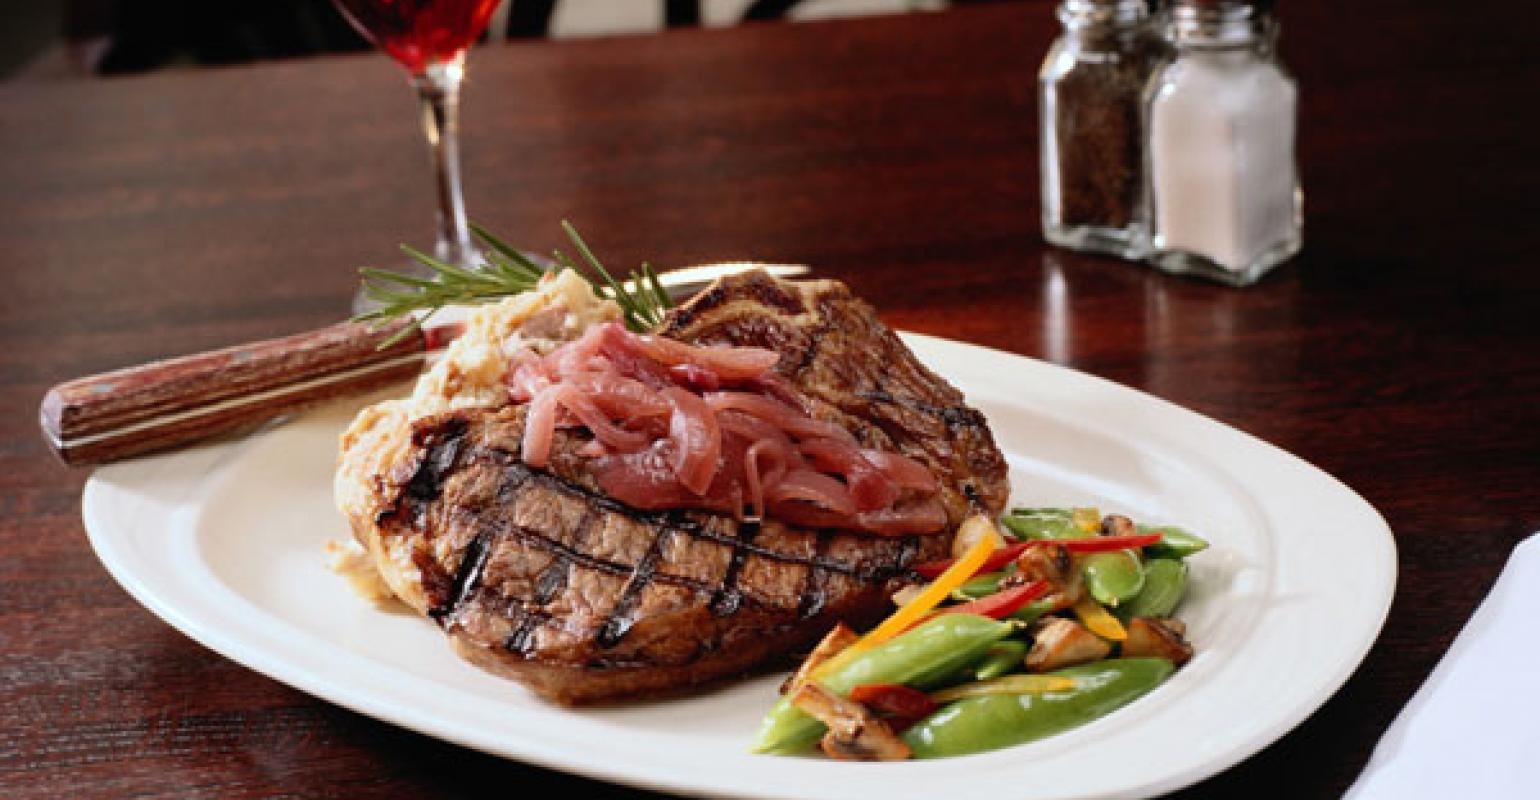 is red meat healthy for diets